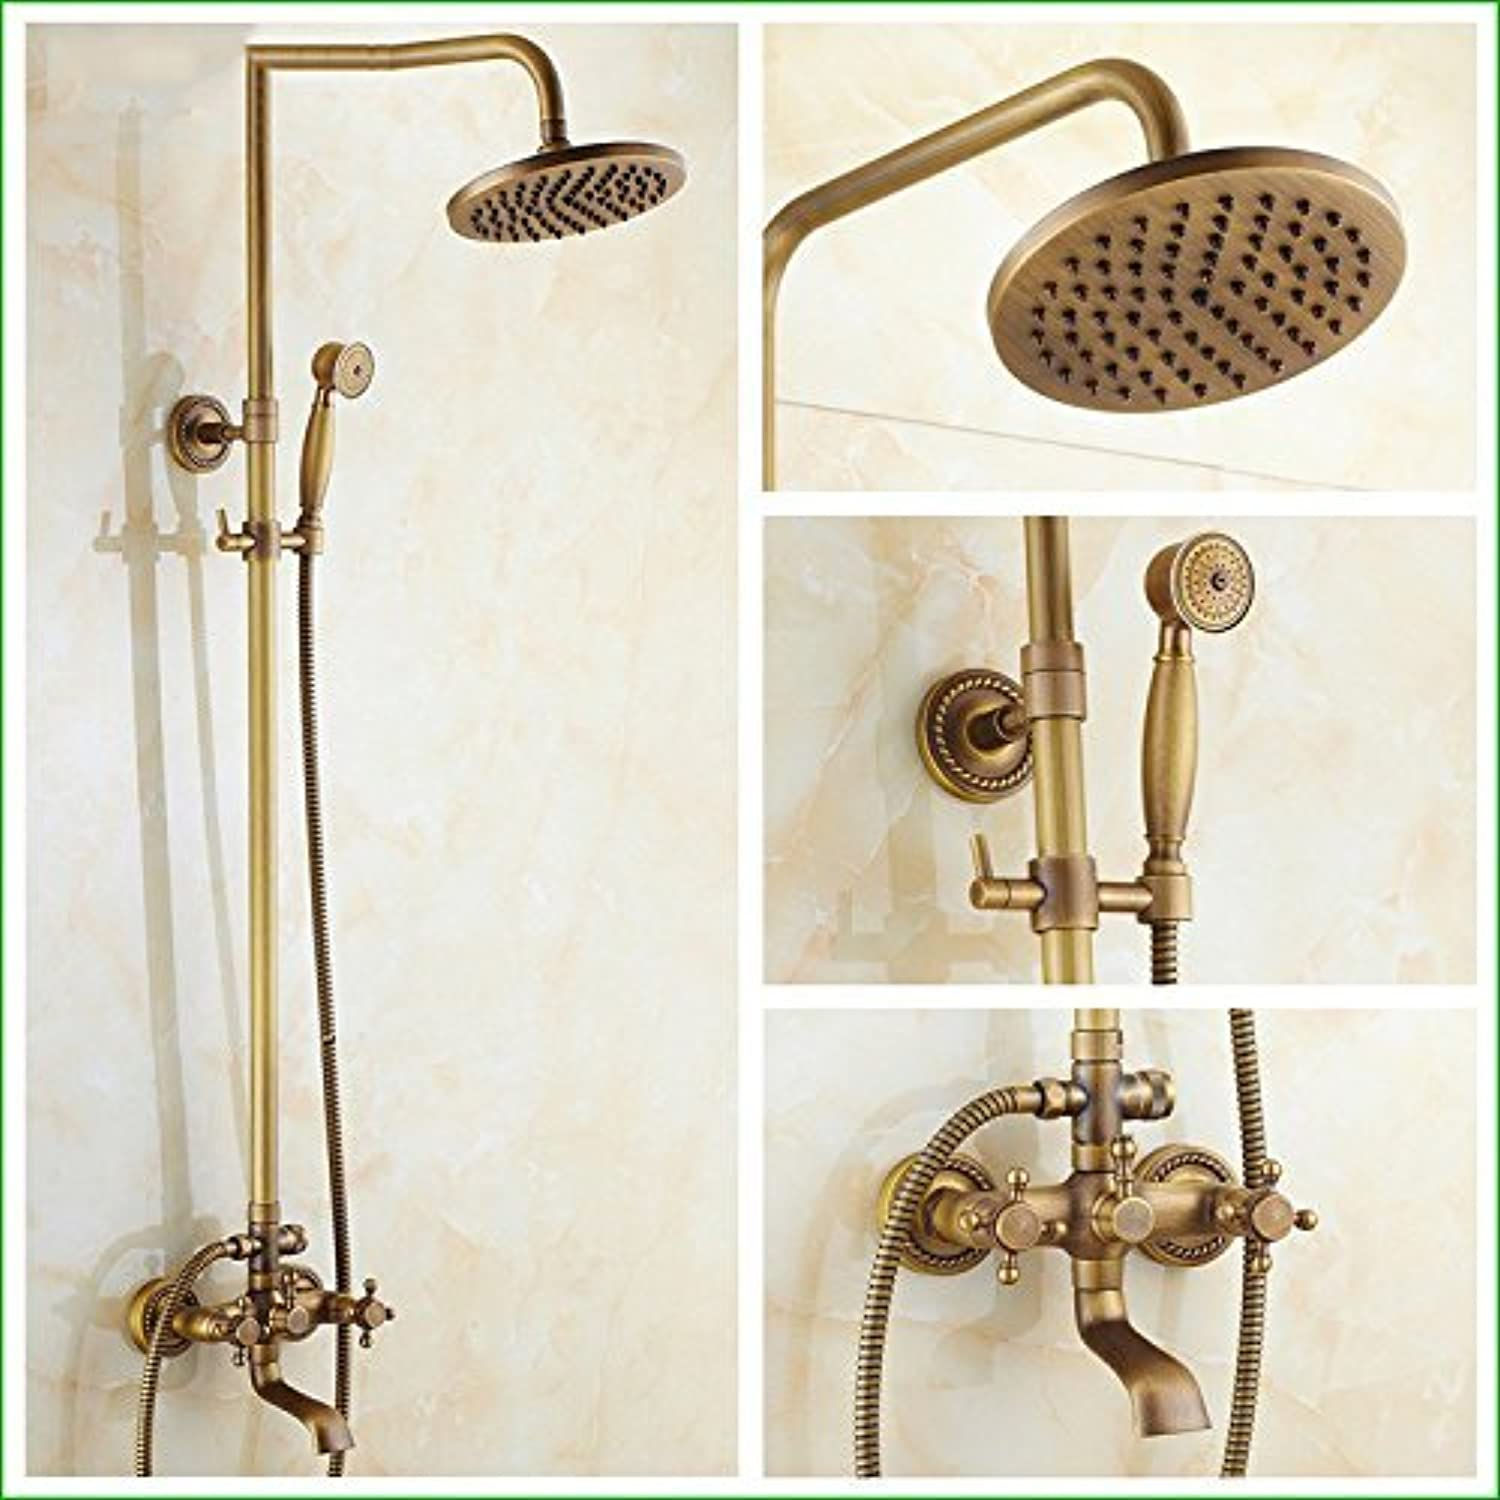 Of The Constant Temperature Faucet Shower Fully The Antique Copper Seven Community Passport Lift Glass Multi-Function Shower Faucet Hand Sprinkler